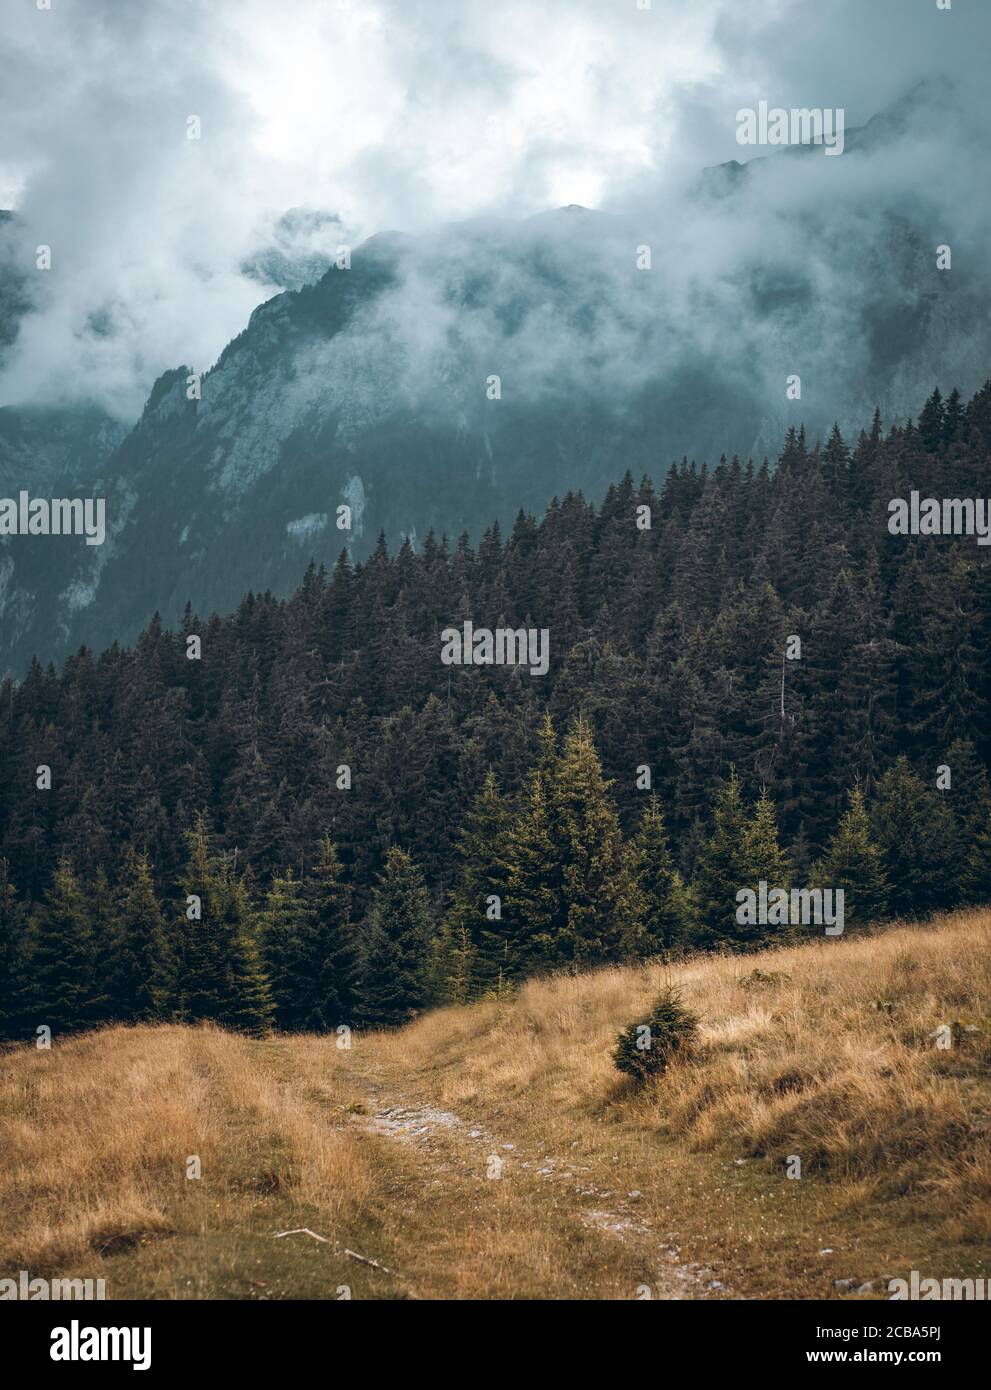 Mountain Landscape With Trees And Clouds Mist During Day Background Wallpaper Stock Photo Alamy Clouds mountains trees grass spruce fog